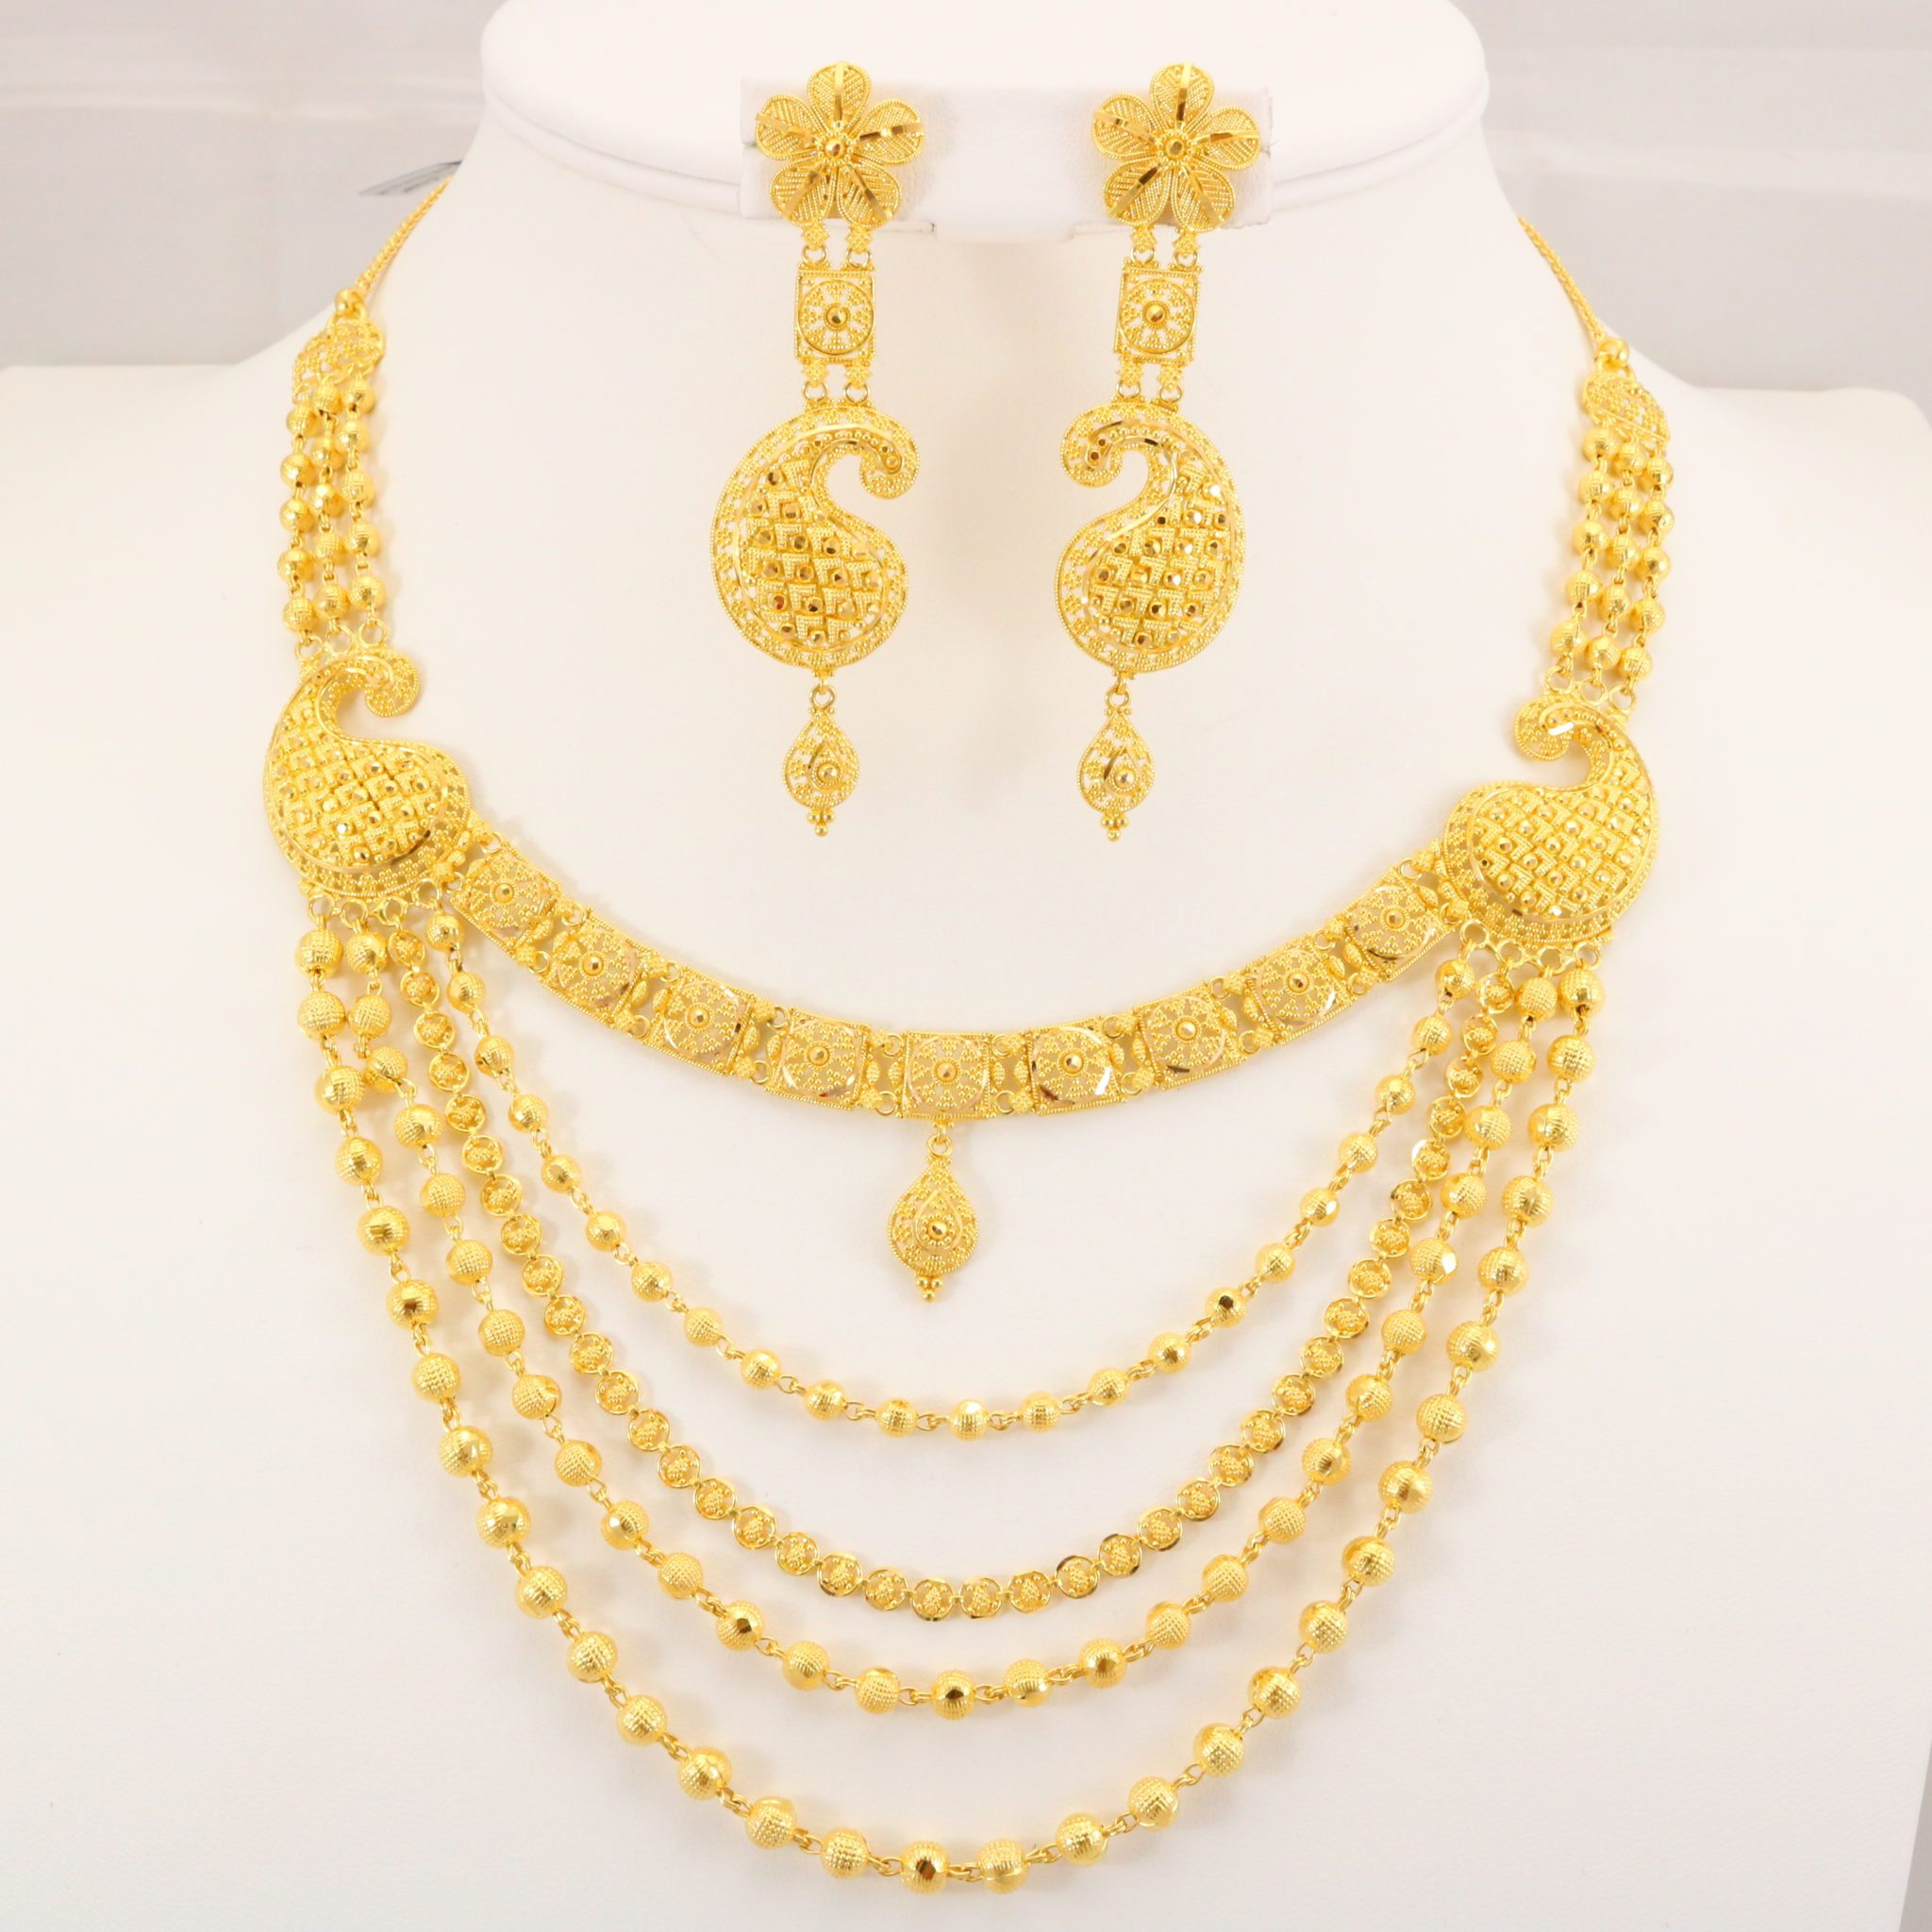 22 Carat Indian Gold 5 Chain Necklace Set 70.4 Grams | Gold Forever